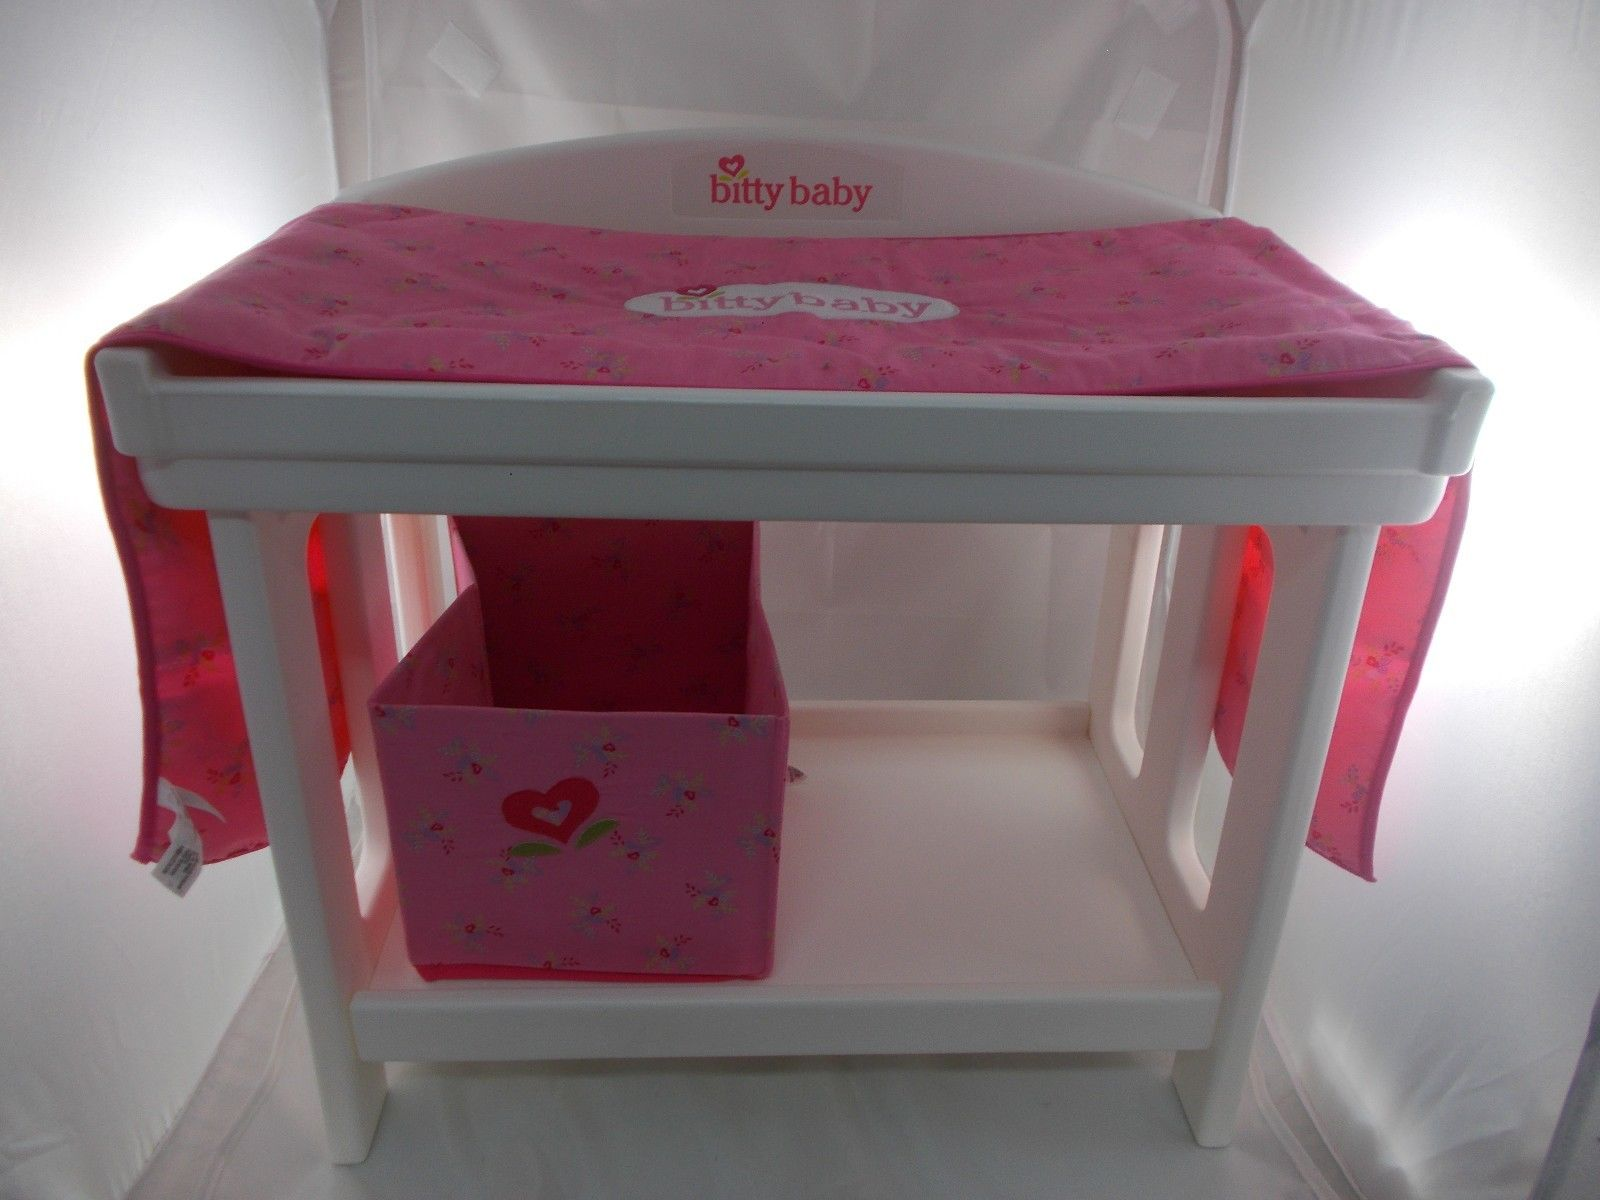 Davinci Kalani Changing Table | Baby Diaper Changing Table | Bitty Baby Changing Table